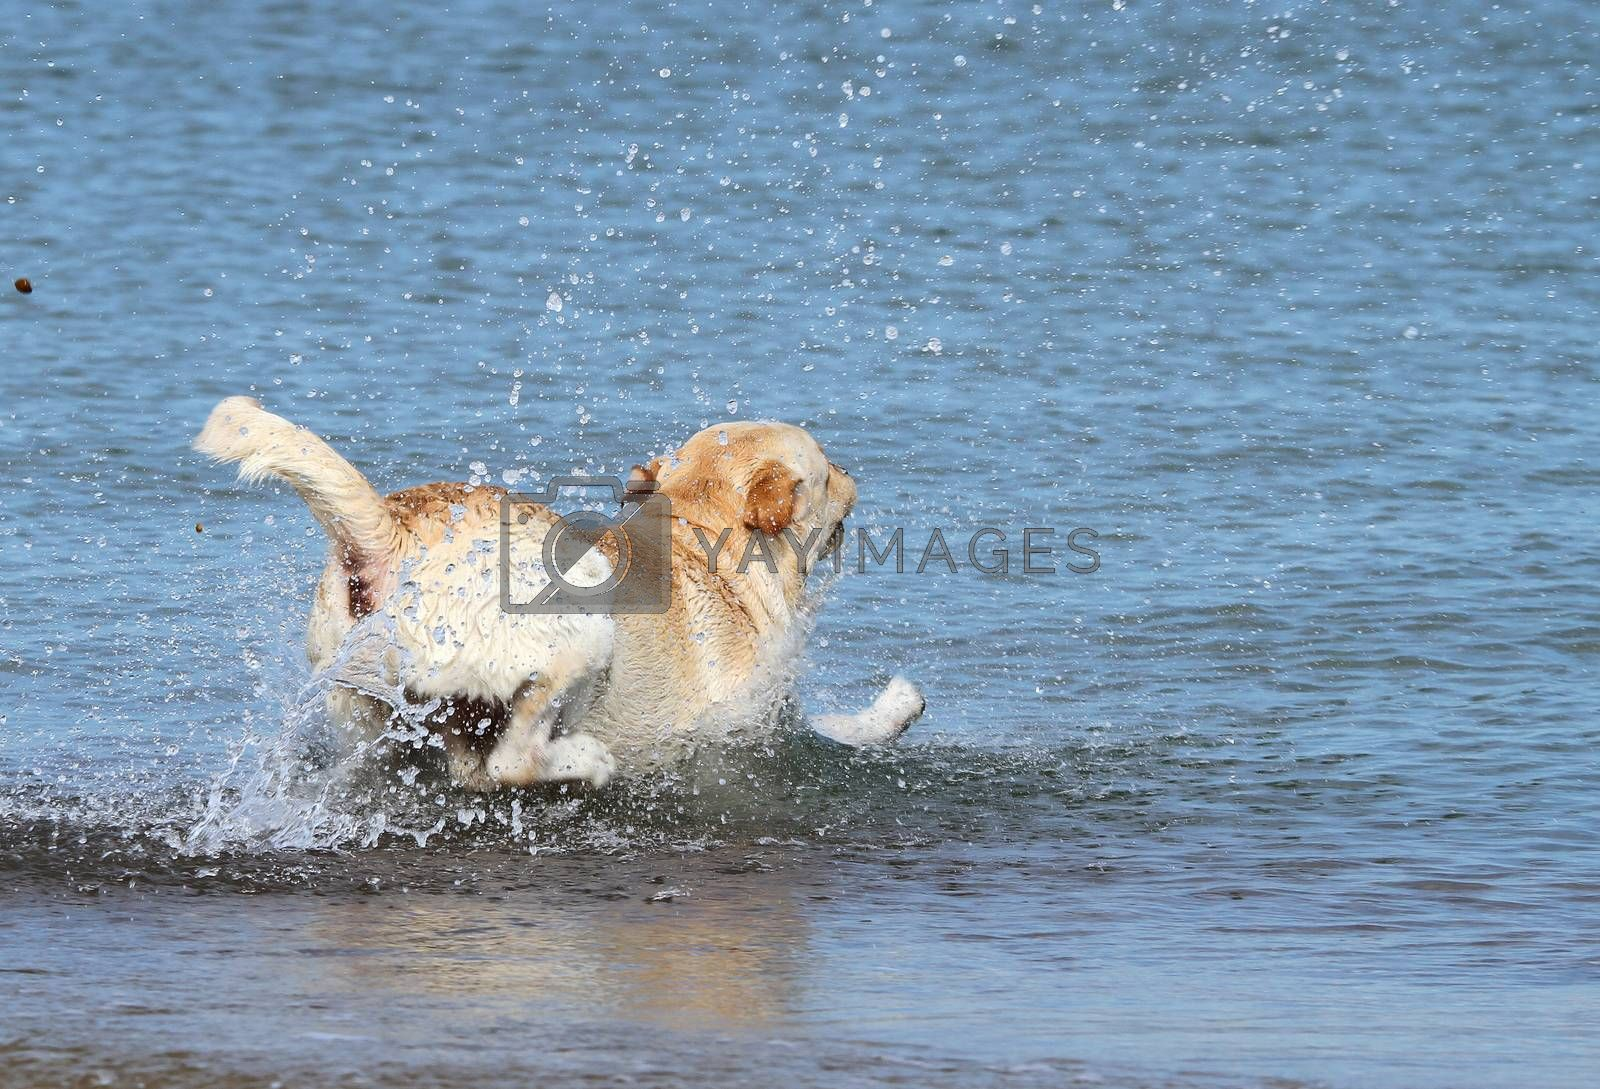 Royalty free image of a labrador swimming in the sea by Yarvet